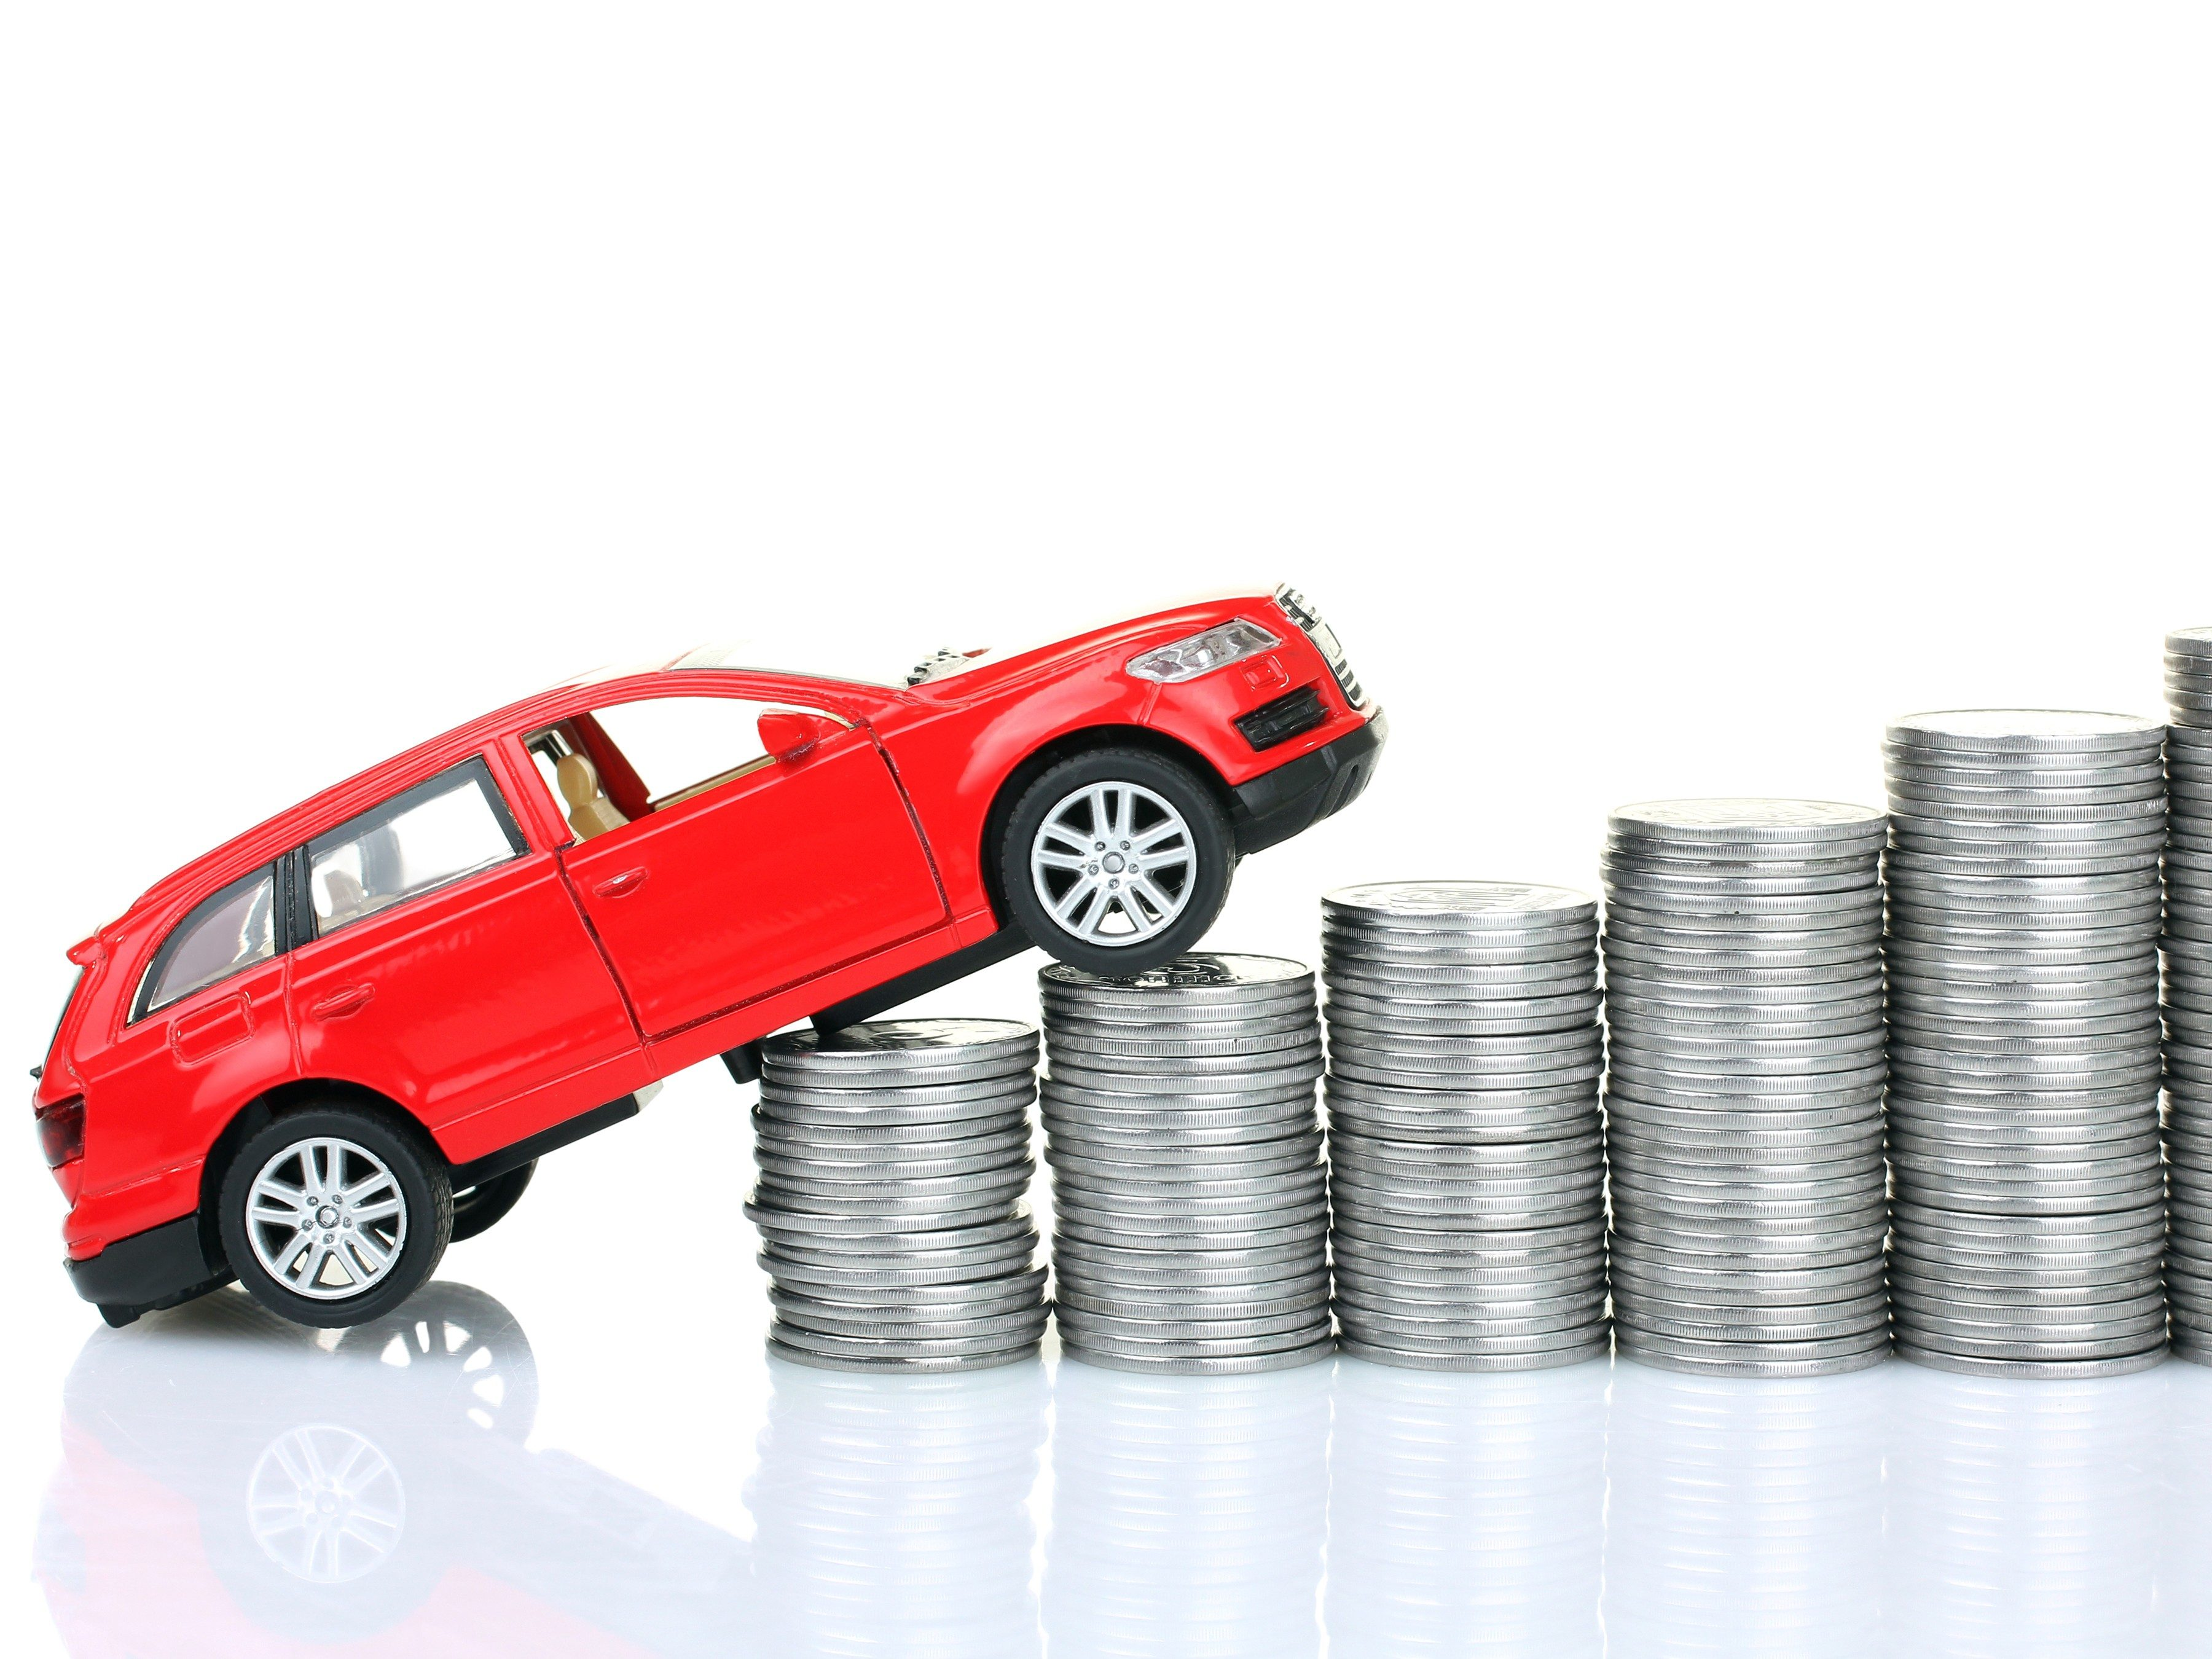 4. Research Used Car Market Values in Advance